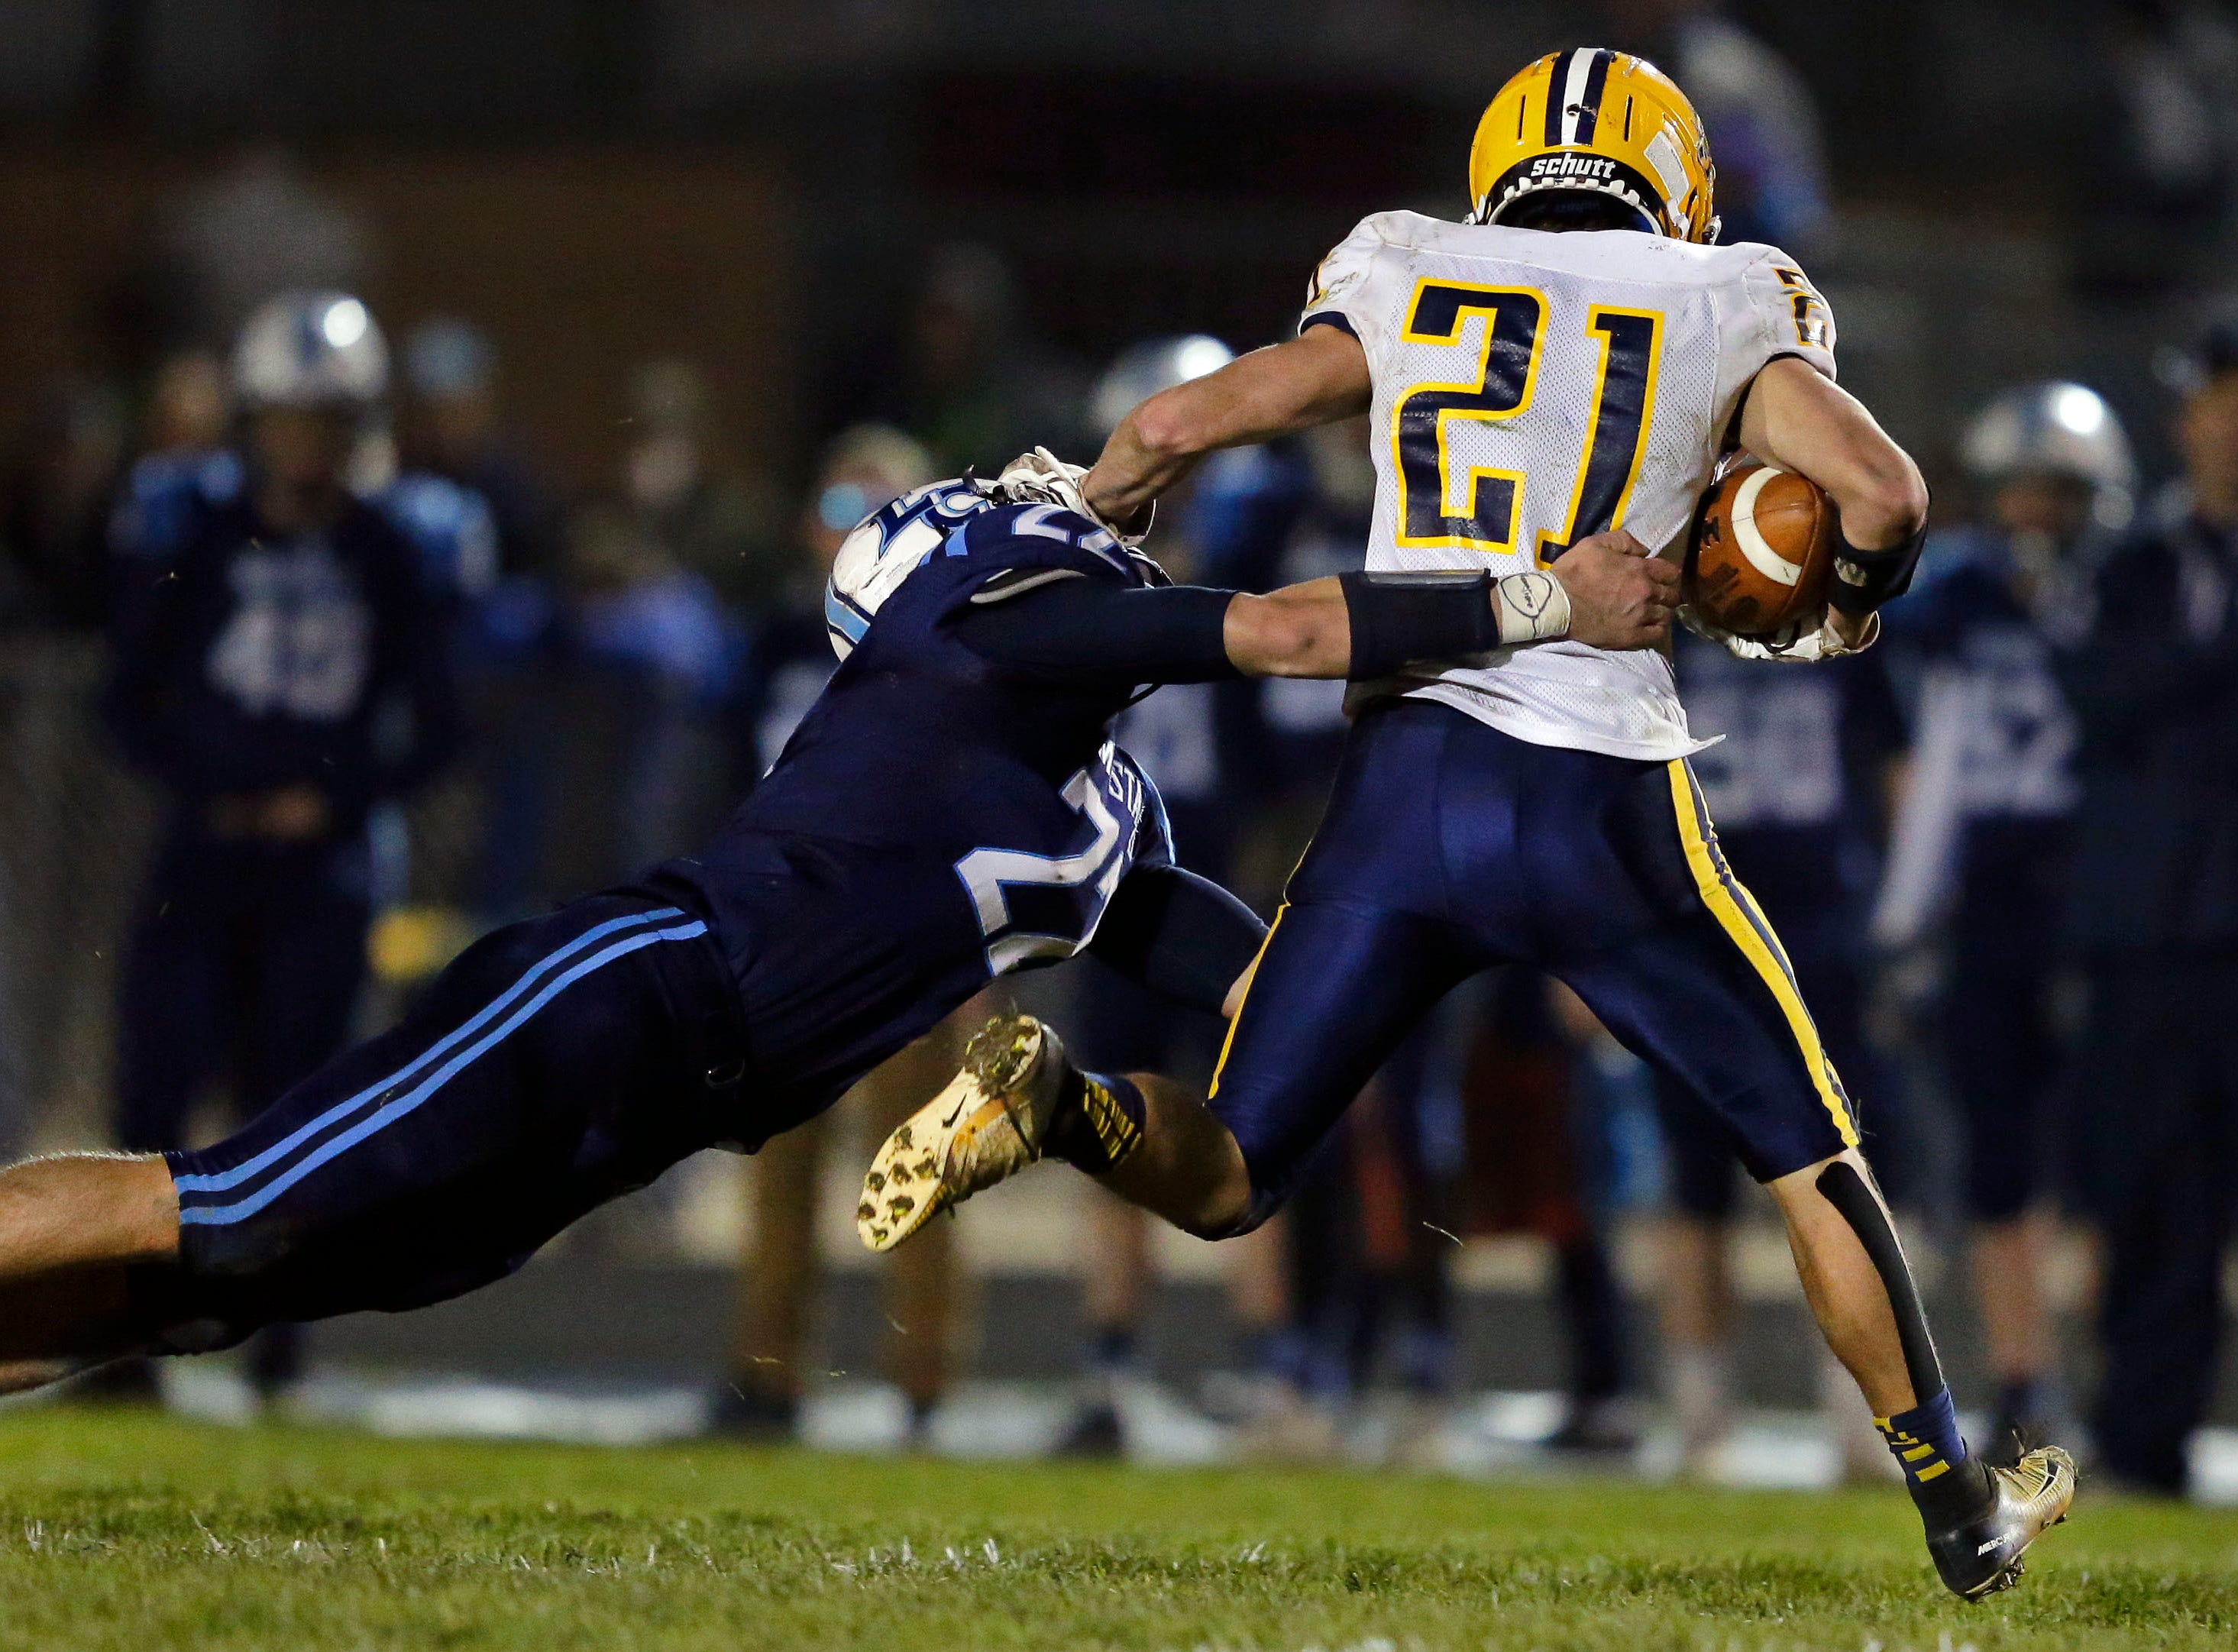 Bryce Schumacher of Little Chute tackles Gaven Lisowe of Chilton in a WIAA Division 4 second round football playoff game Friday, October 26, 2018, at Little Chute High School in Little Chute, Wis.Ron Page/USA TODAY NETWORK-Wisconsin